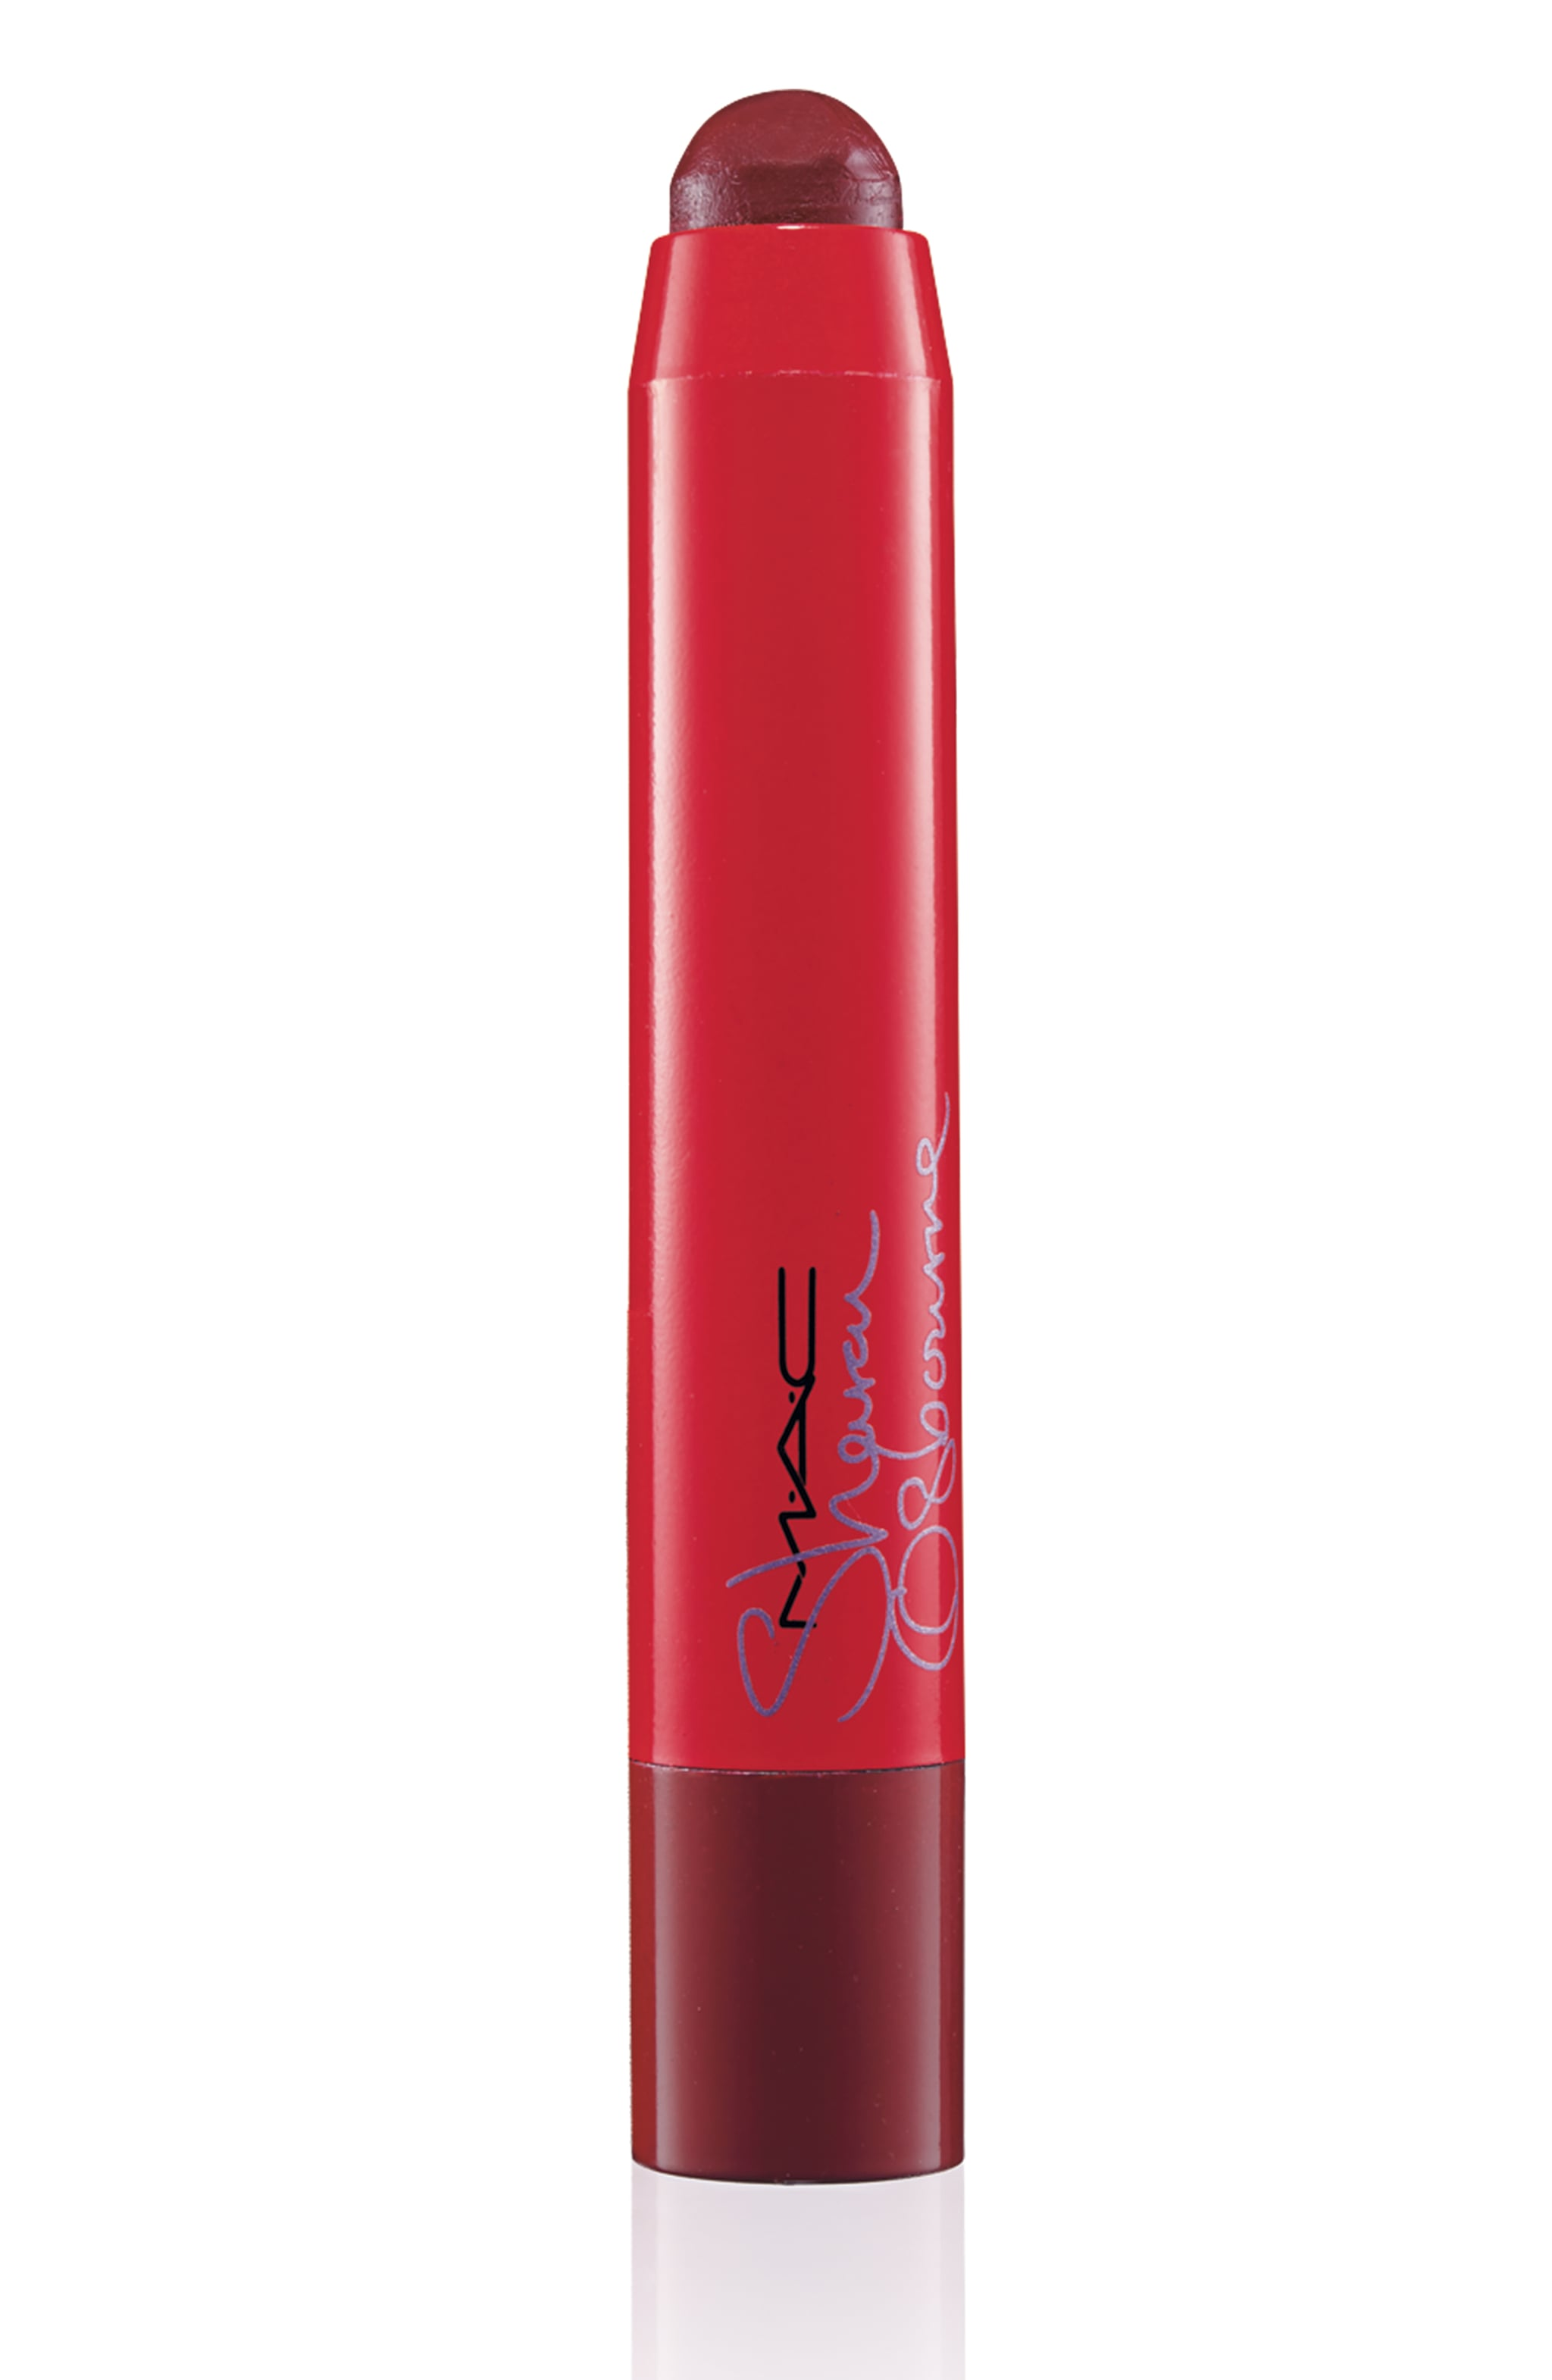 Sharon Osbourne Lip Pencil in Ruby ($22)